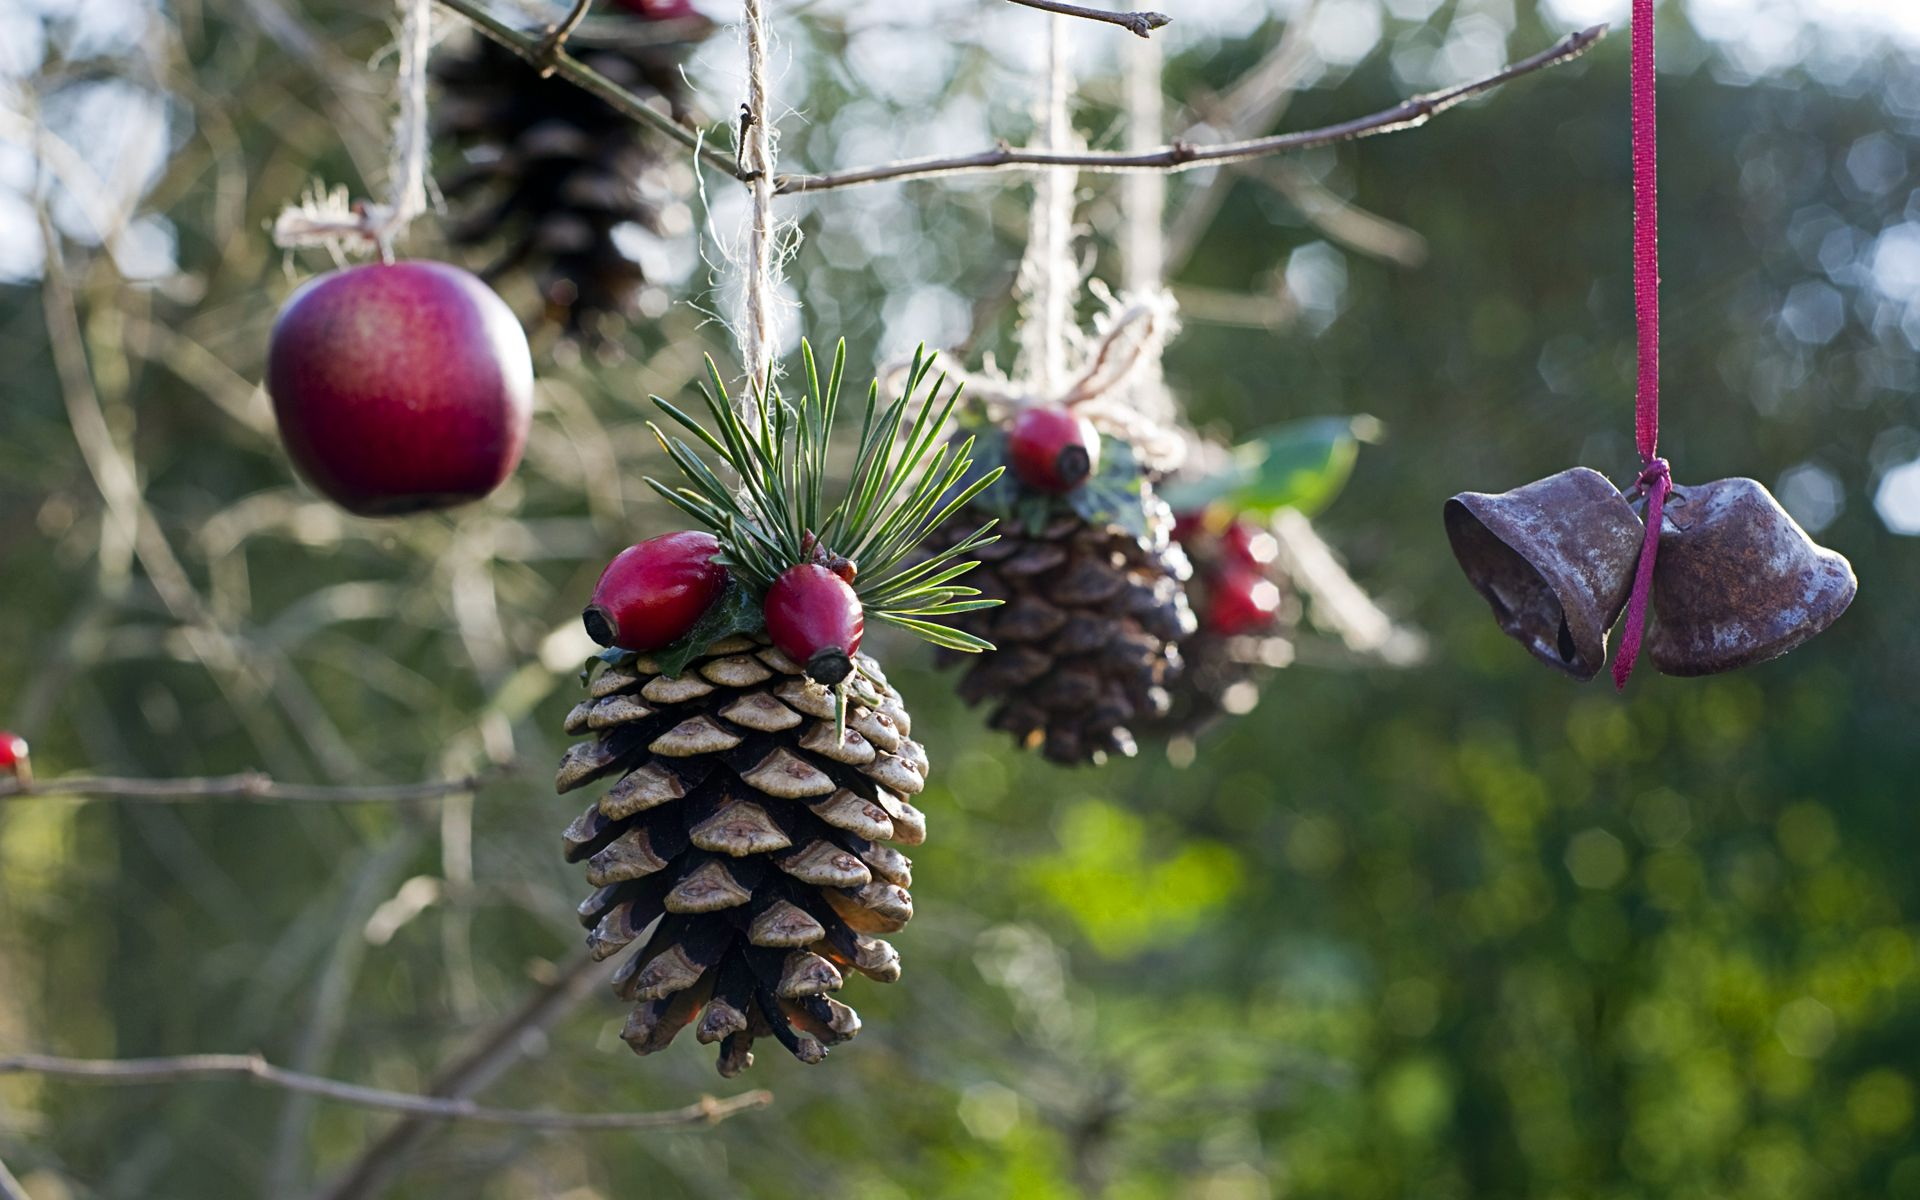 Homemade outdoor holiday decorations made from natural materials